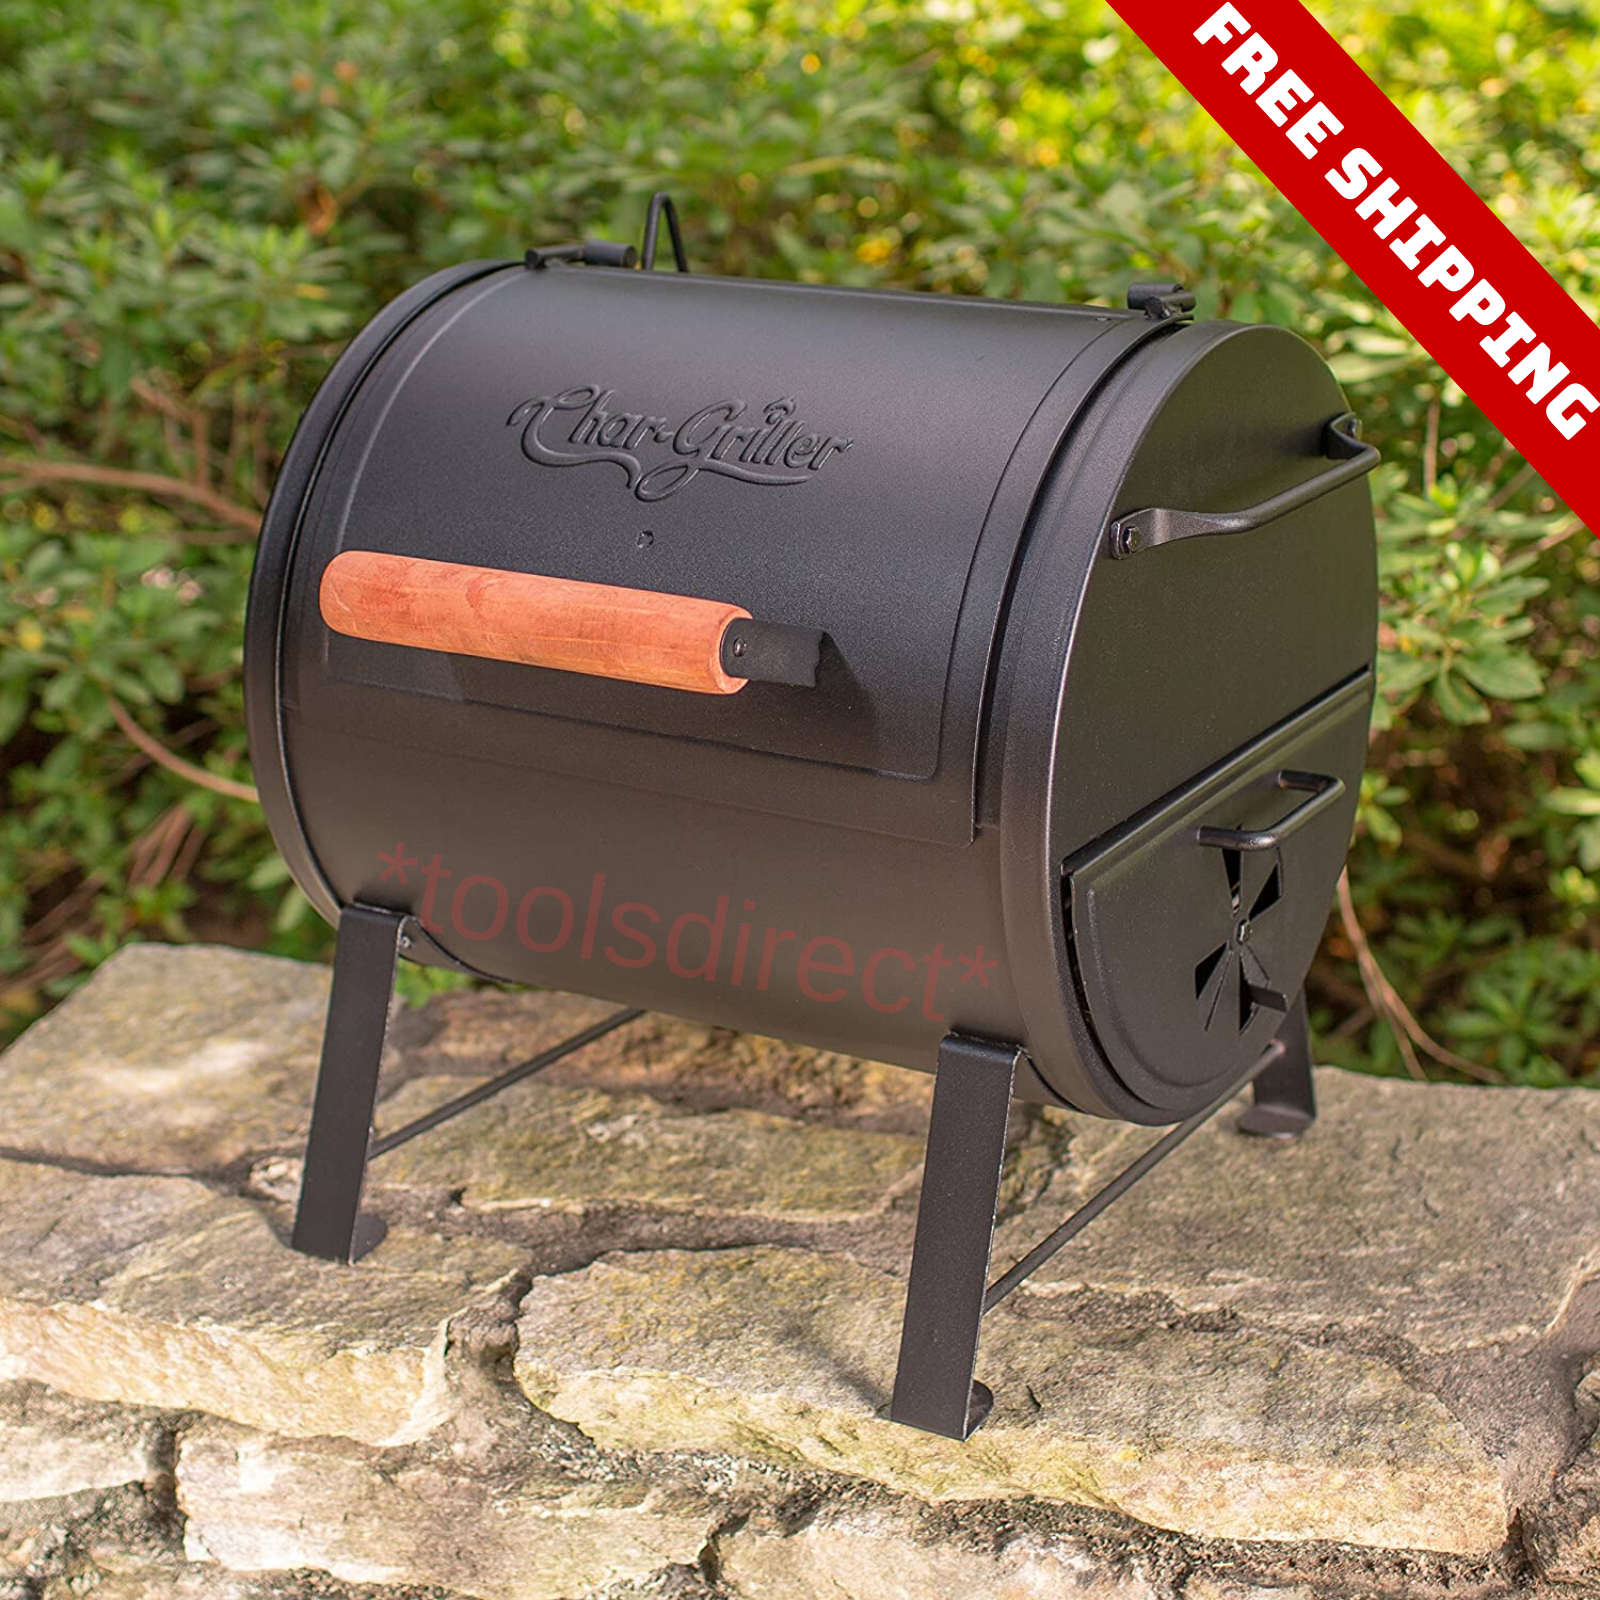 Outdoor Compact Charcoal Grill Portable Camping BBQ Cooking